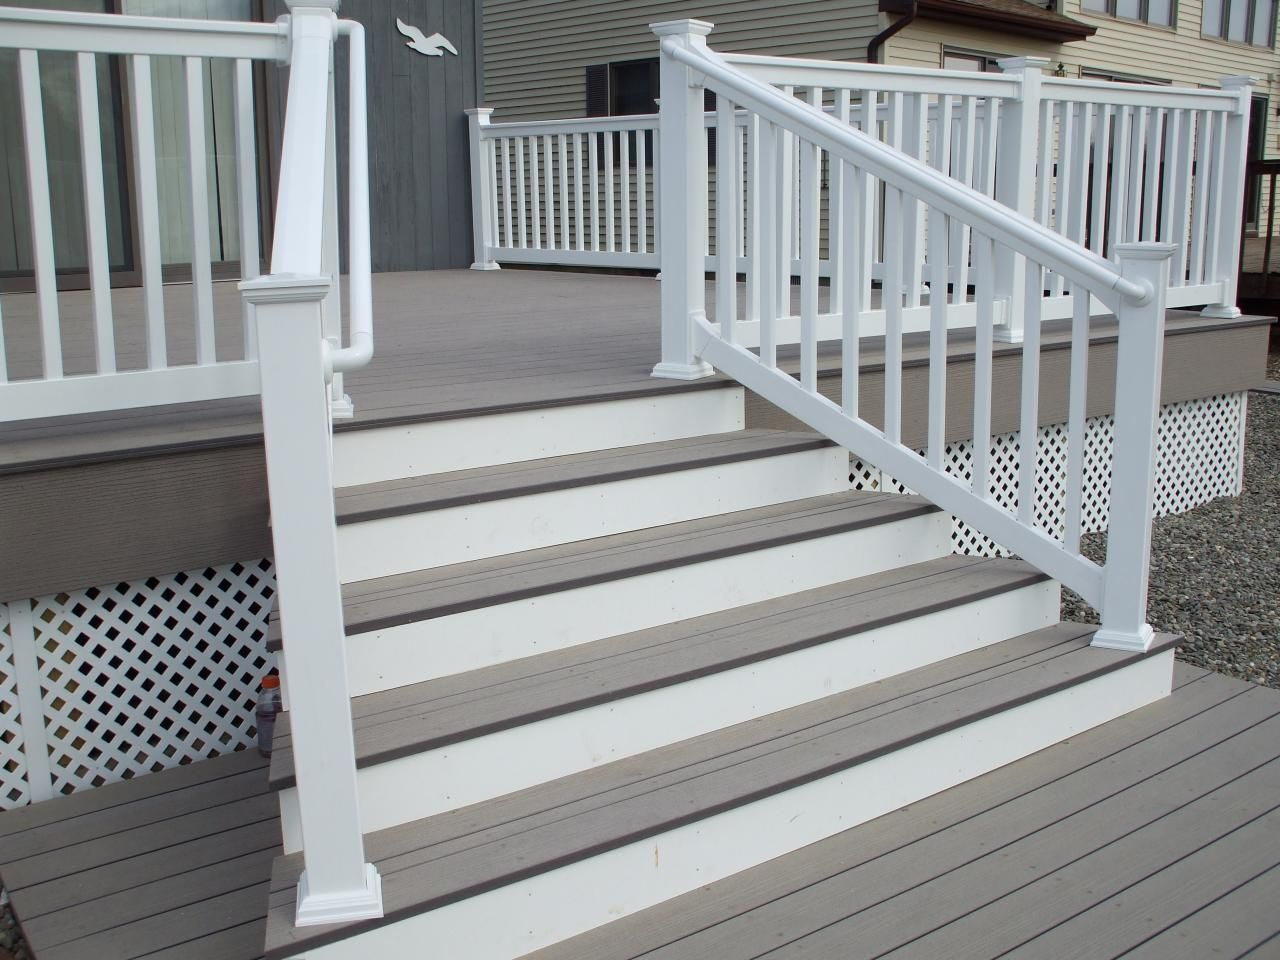 Steps porch stairs stairs paint exterior wood stairs painted exterior - Can You Paint Tile How We Brightened Our Bathtub On A Budget Gray Deckwhite Deckwhite Porchdeck Gatedeck Designbalcony Designstair